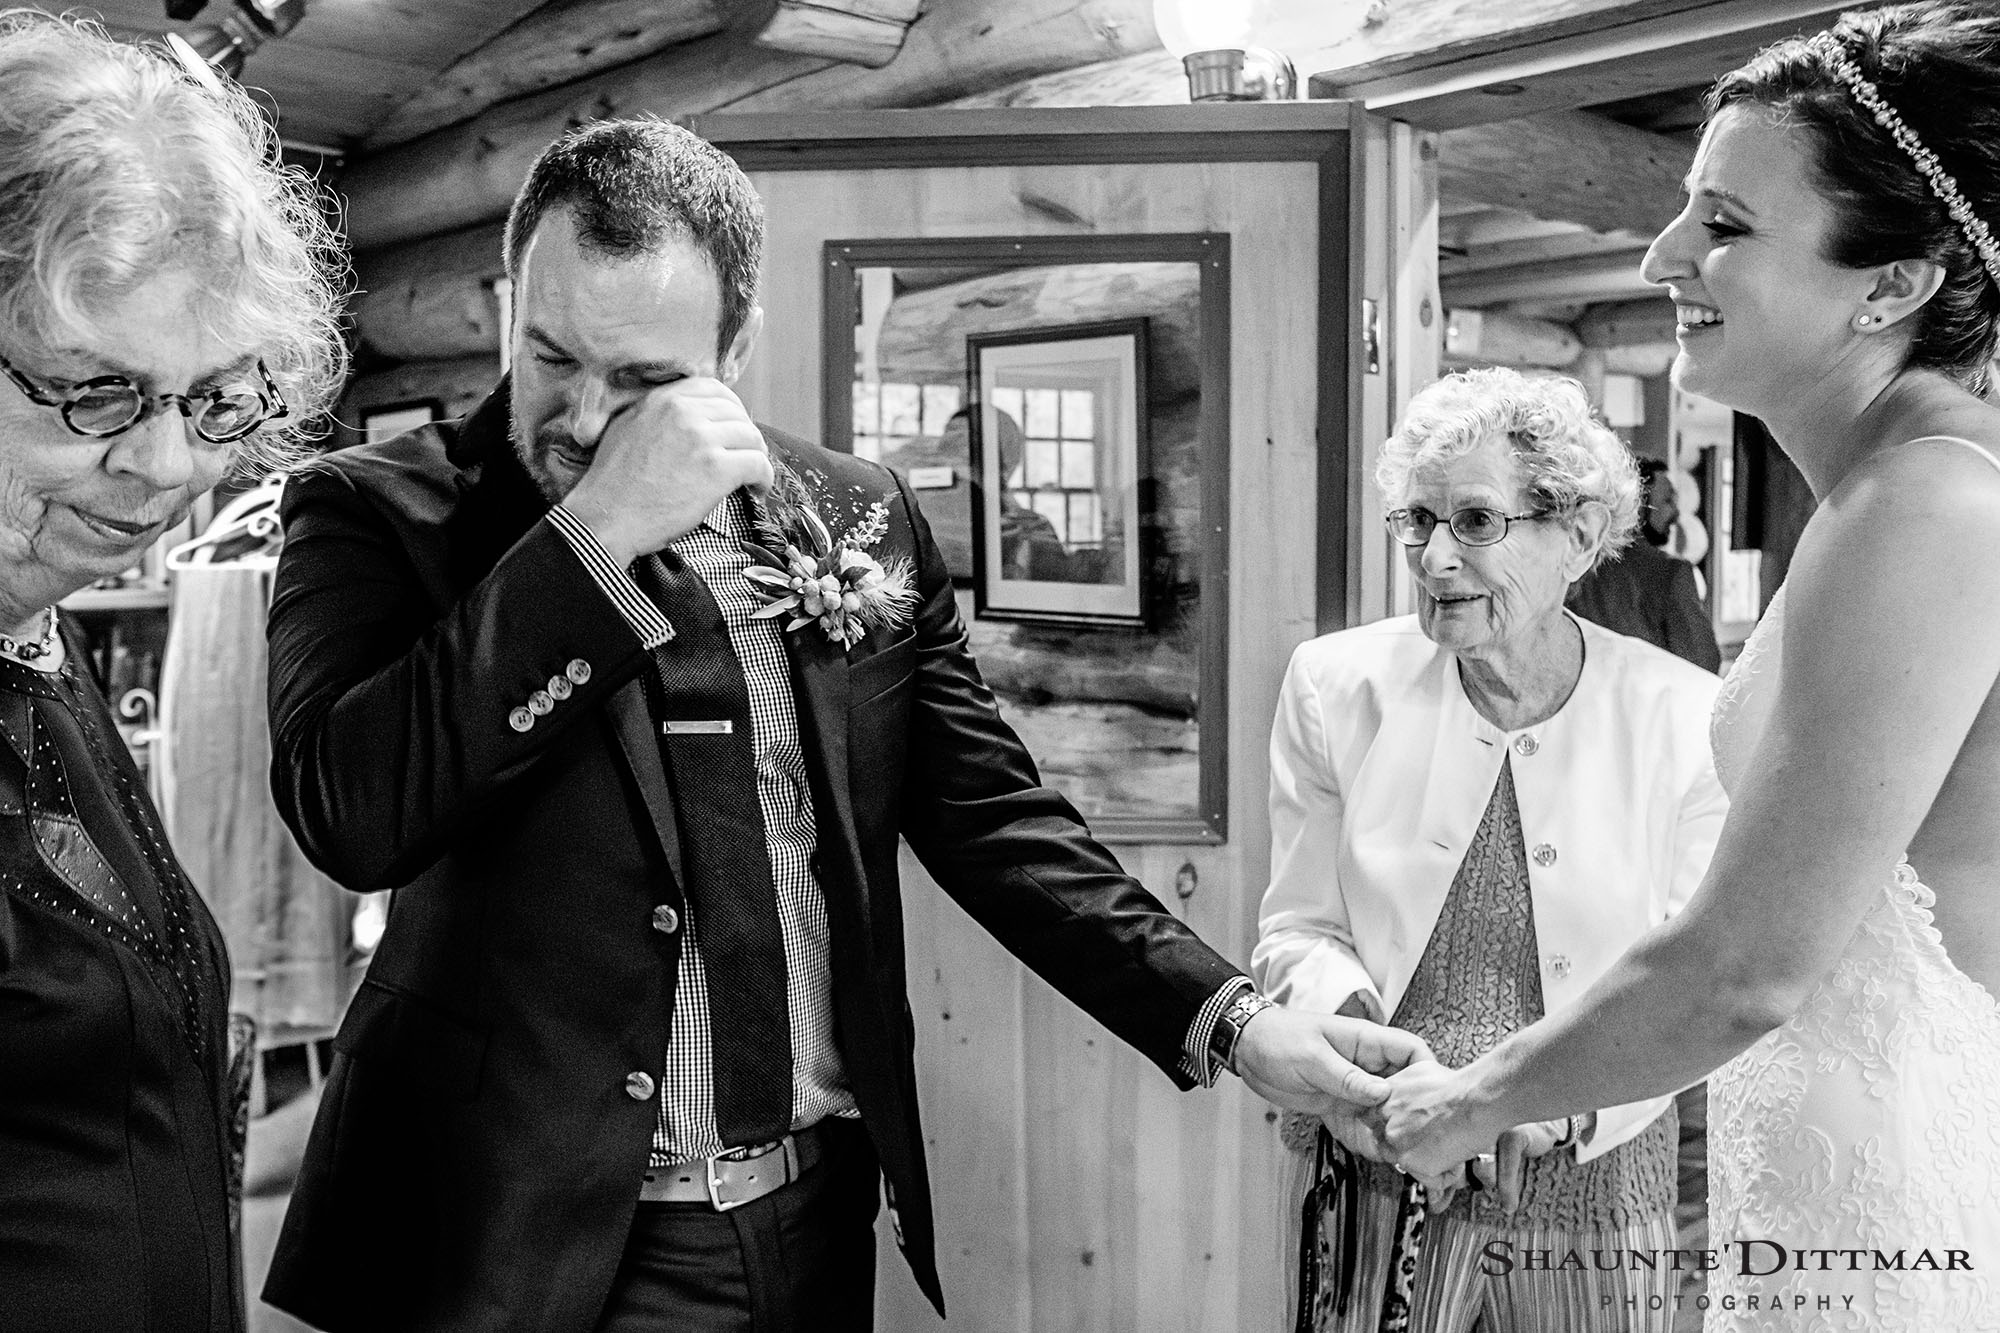 Jill_Keith_17Gatekeepers_Museum_Wedding_Venue_Destination_Wedding_Photographer_Shaunte_Dittmar_Photography.jpg